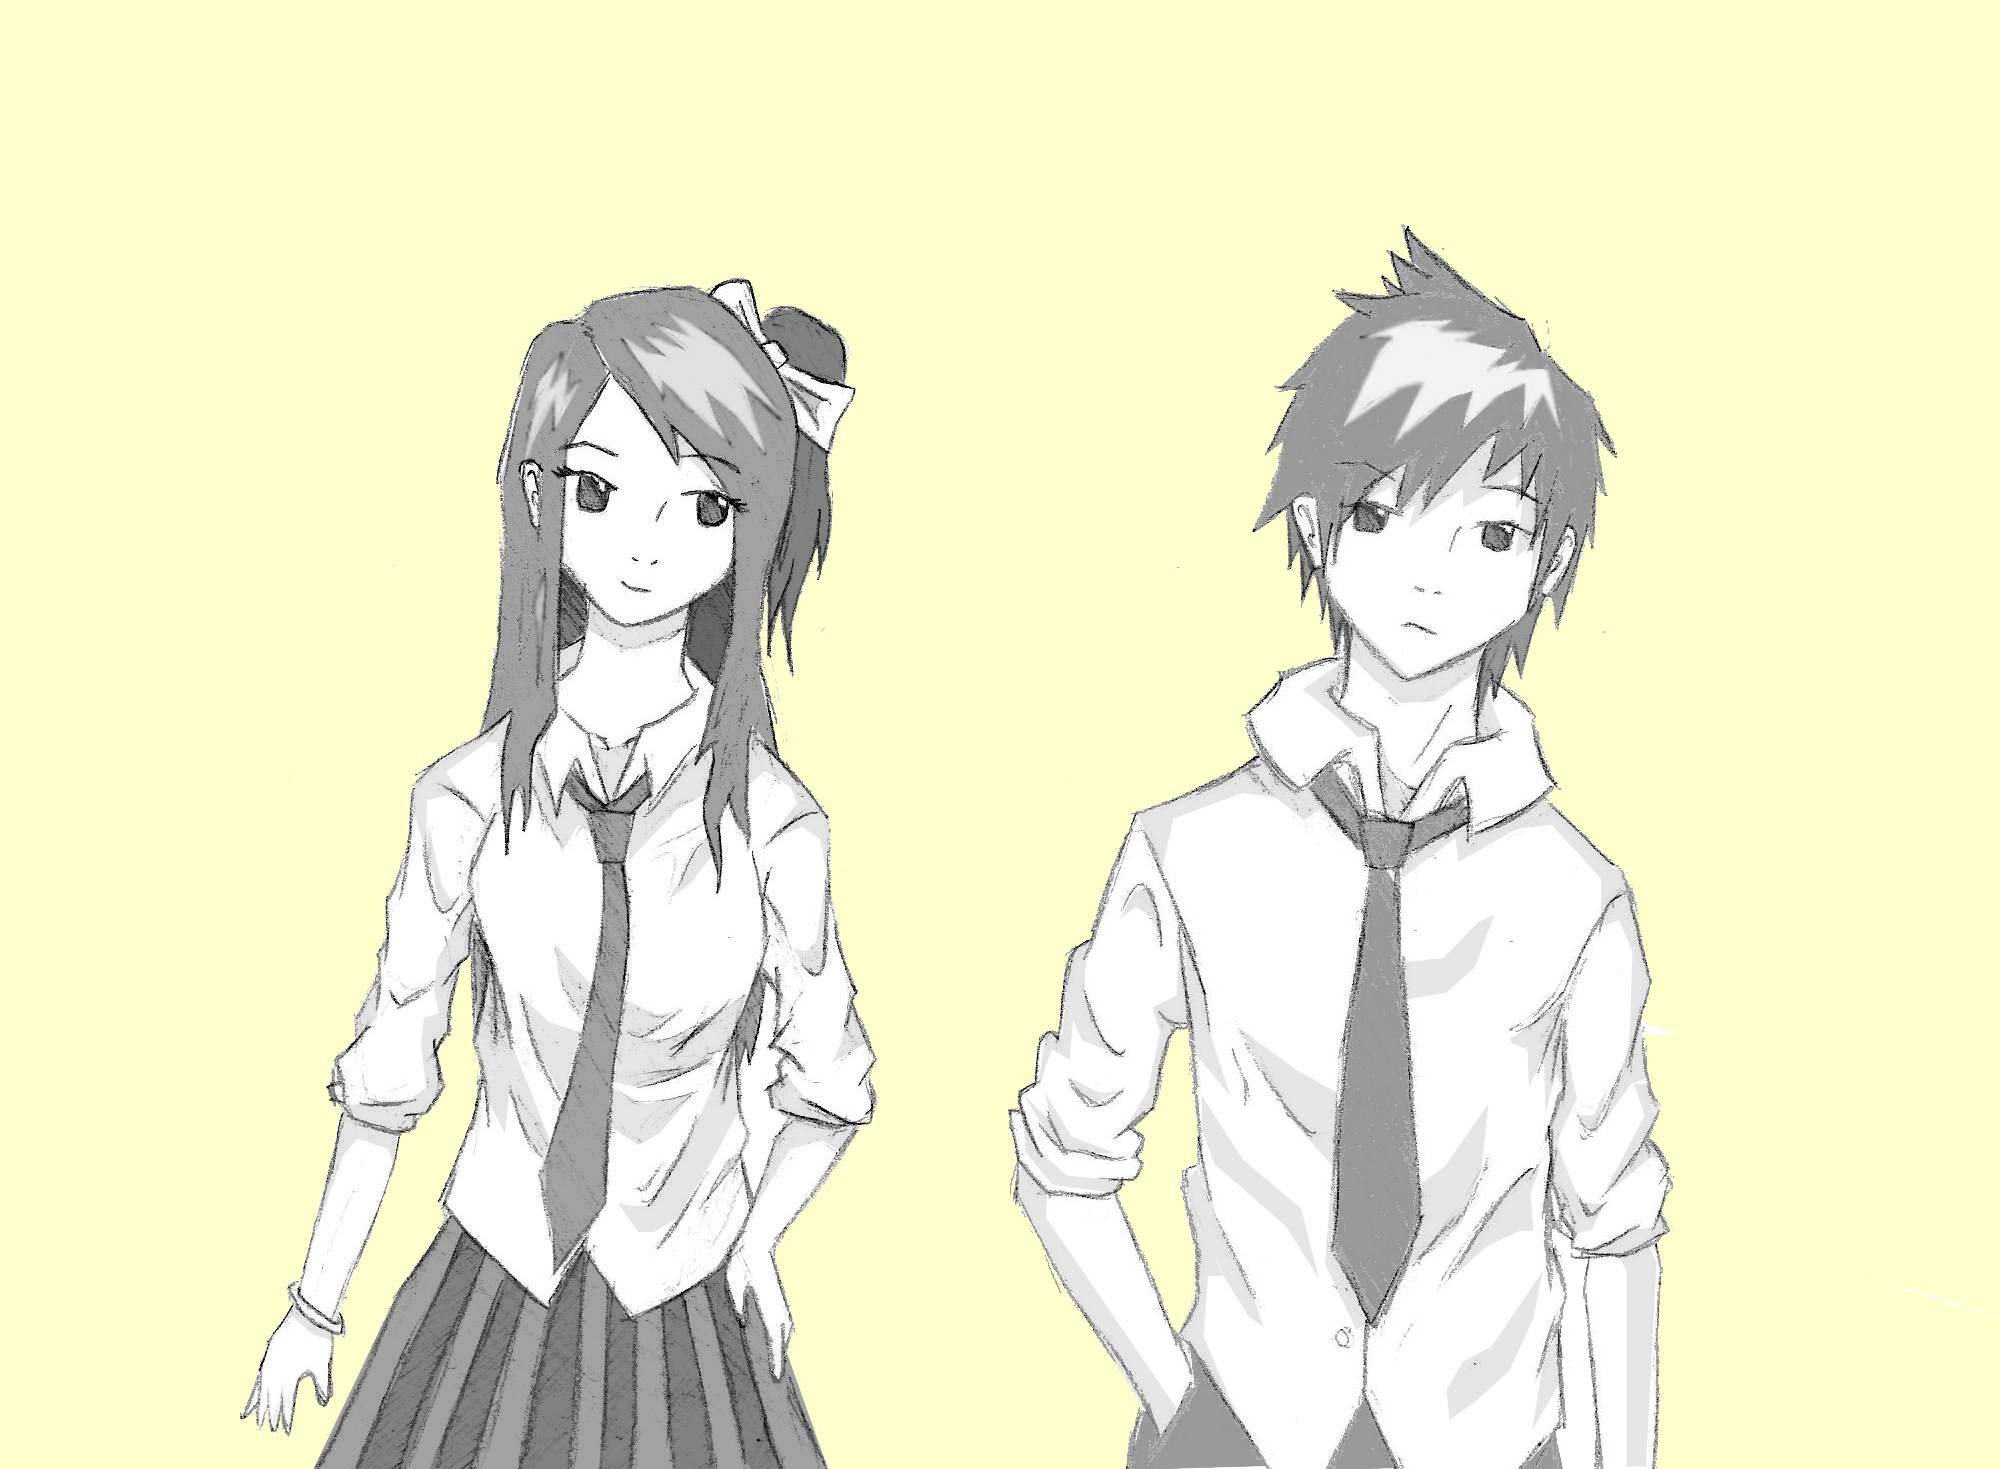 2000x1469 Anime Drawing Of A Boy And Girl Boy And Girl Anime Holding Hands